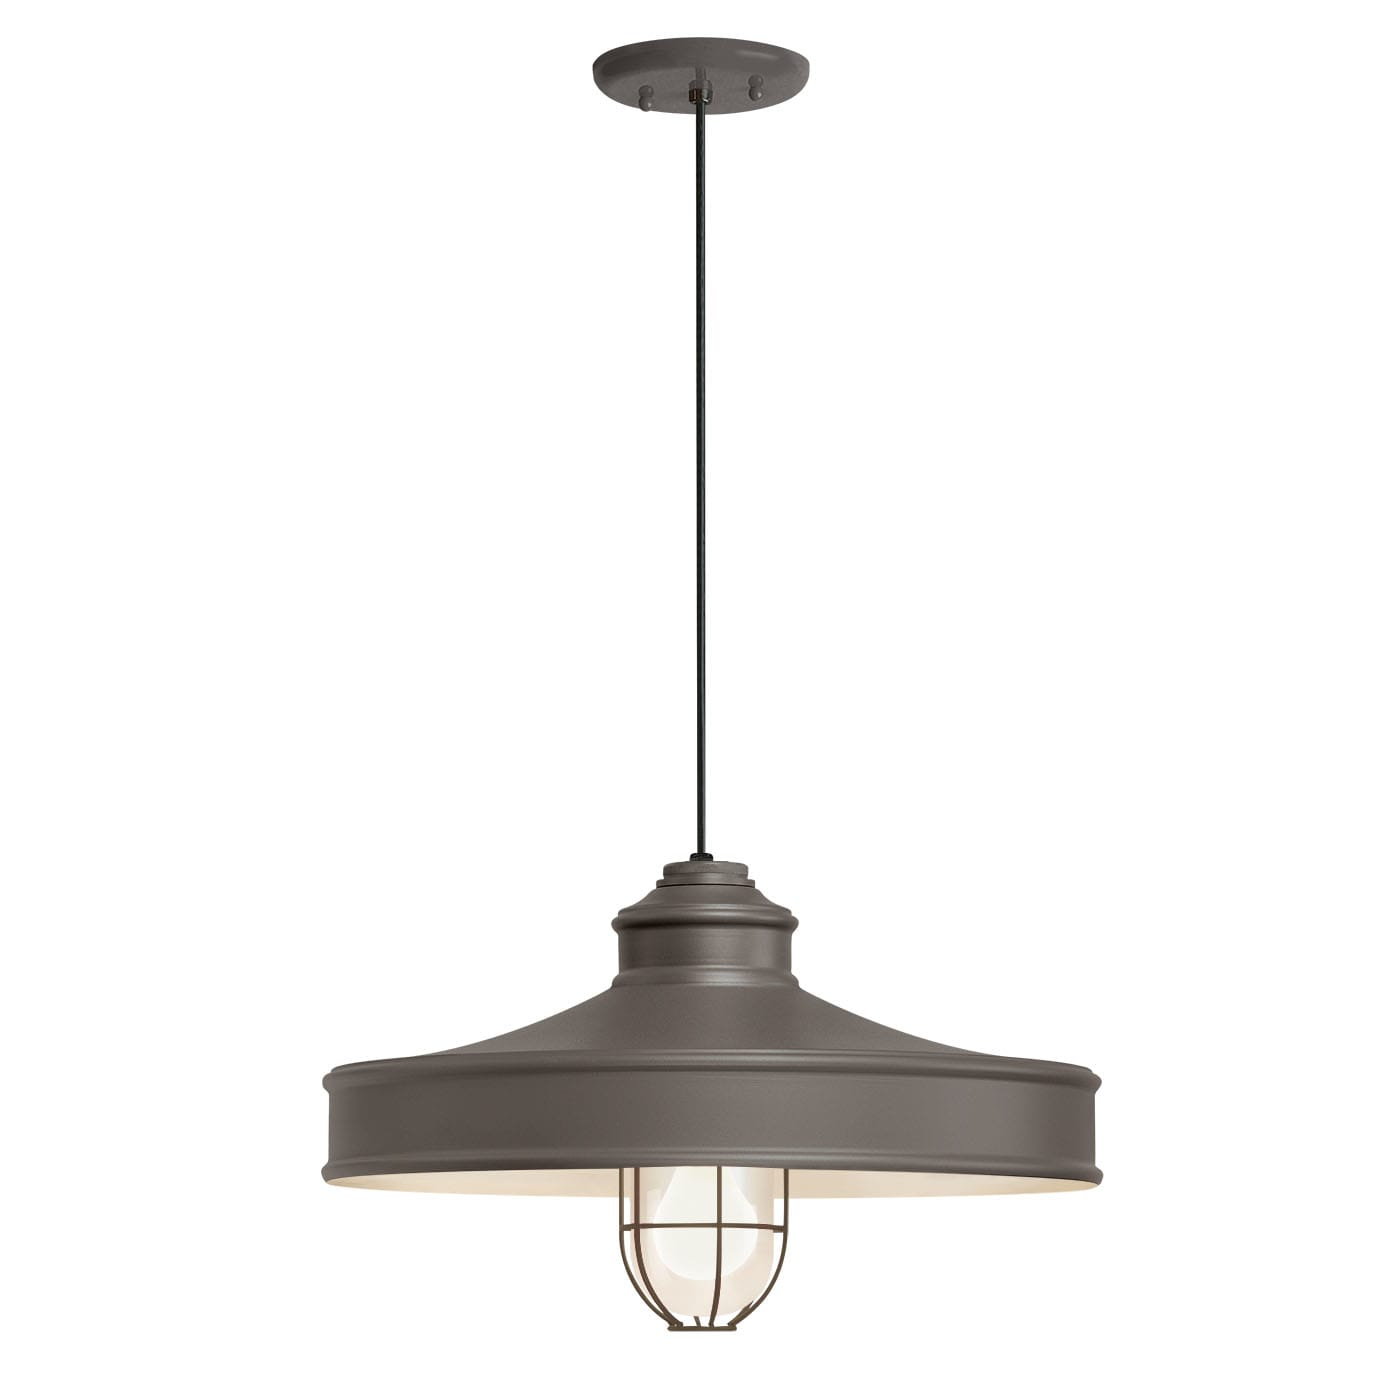 Troy Rlm Lighting 5dnc16mfggbk Bc Black Nostalgia 16 Wide